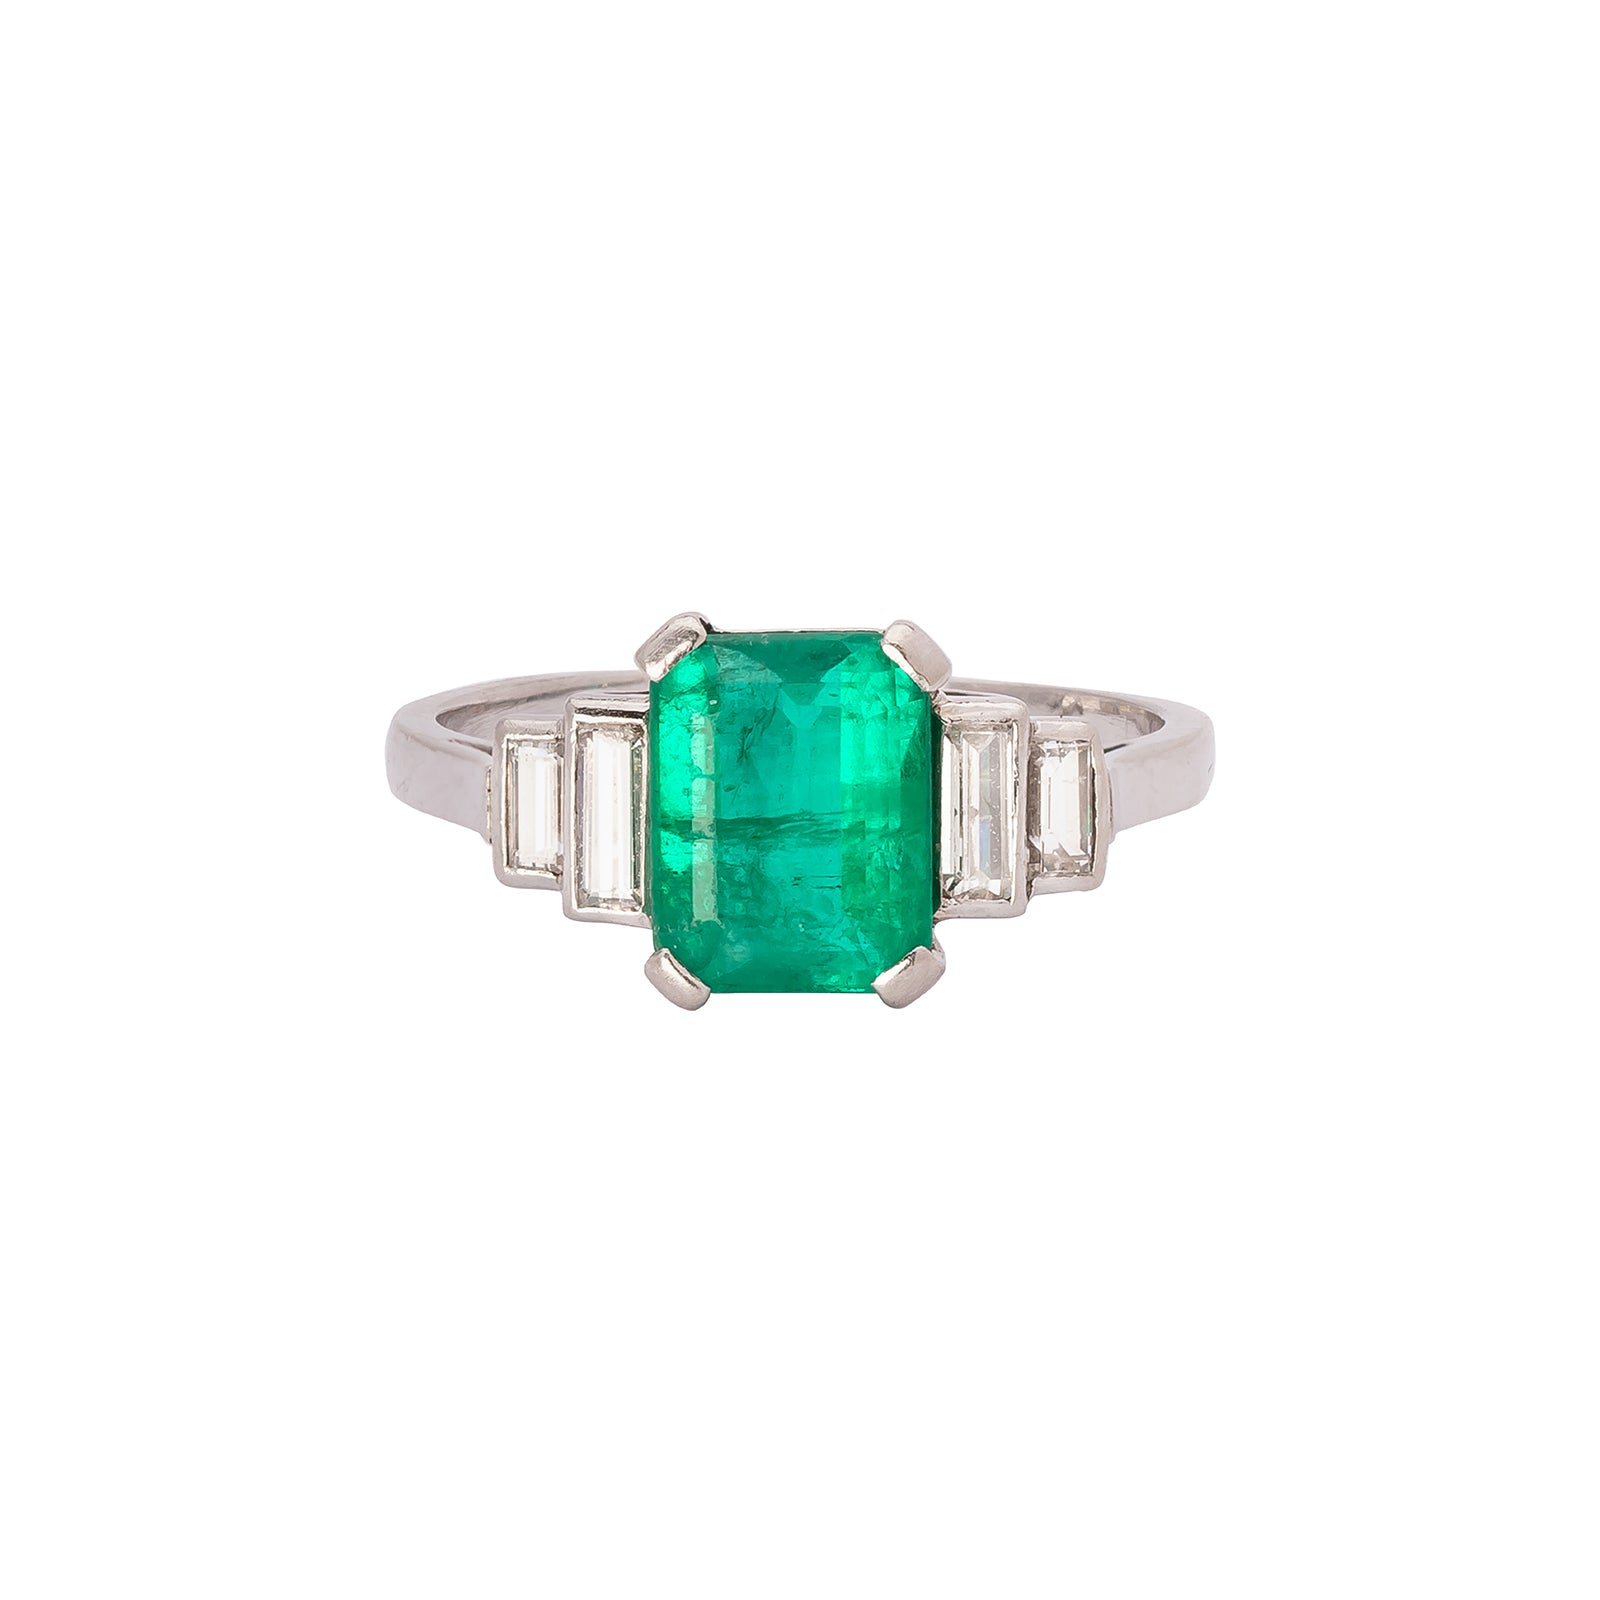 Antique & Vintage Jewelry Art Deco Emerald & Diamond Step Ring - Rings - Broken English Jewelry